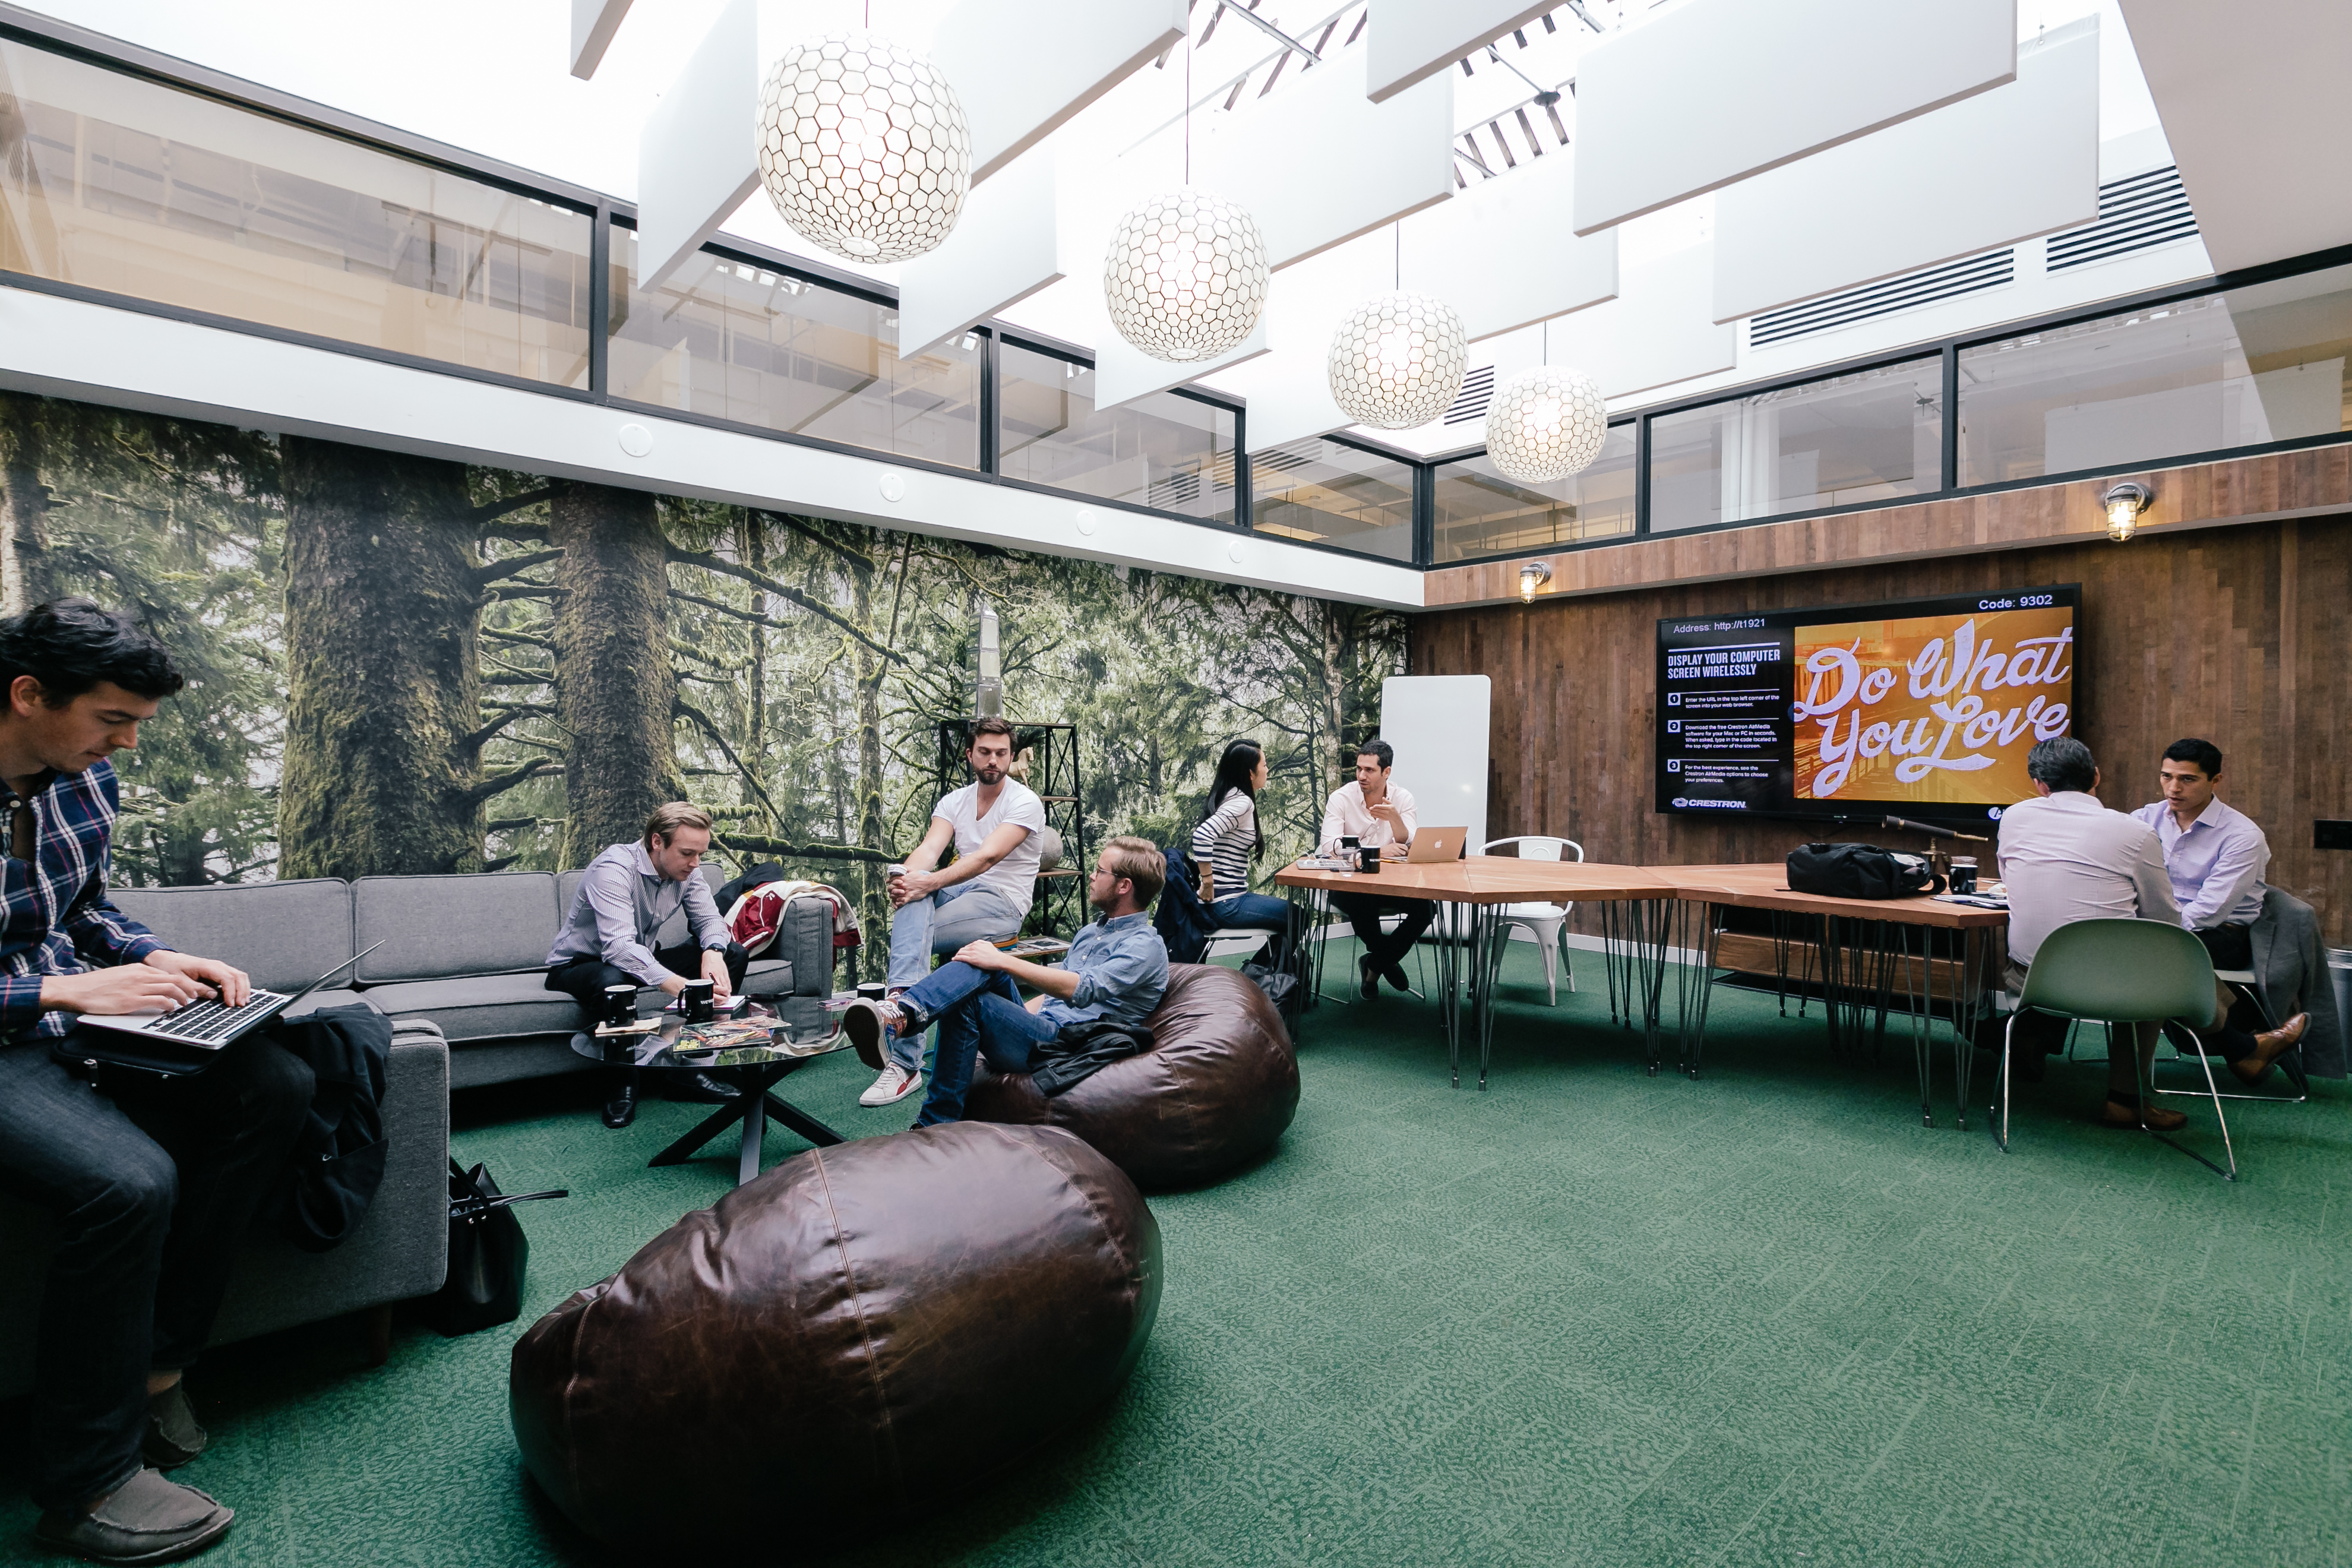 WeWork's West Broadway lounge location in New York City.